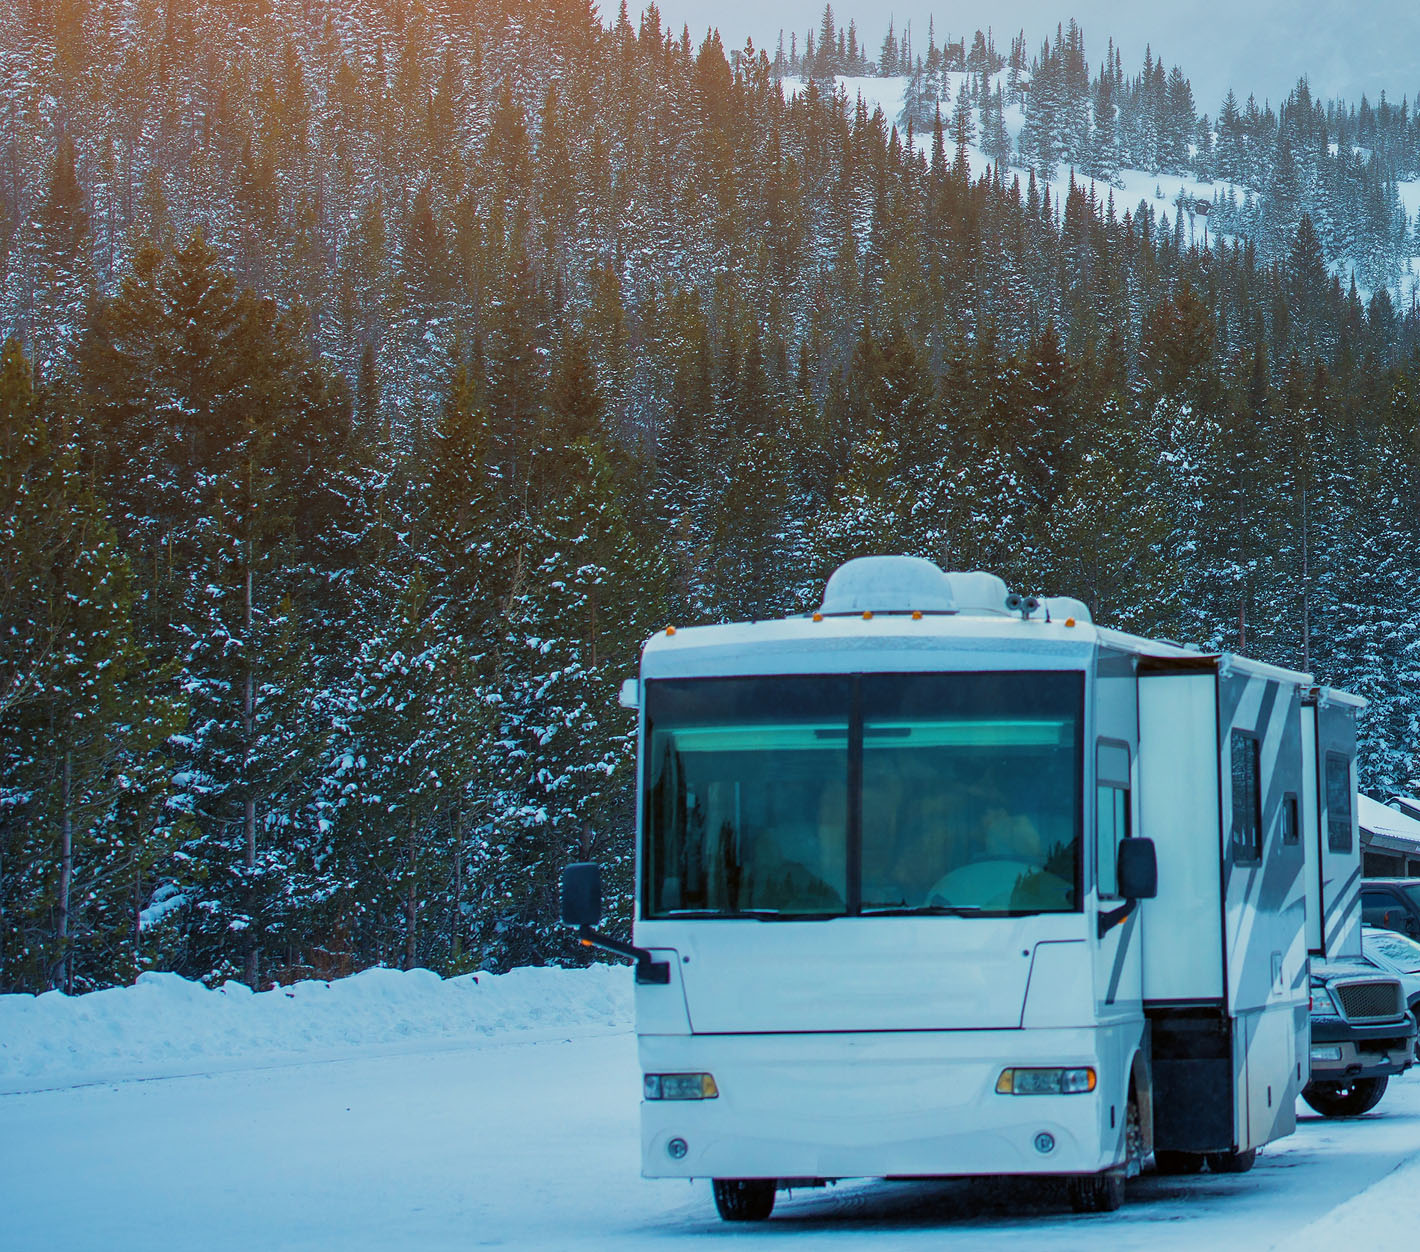 RV with ski run in the background.